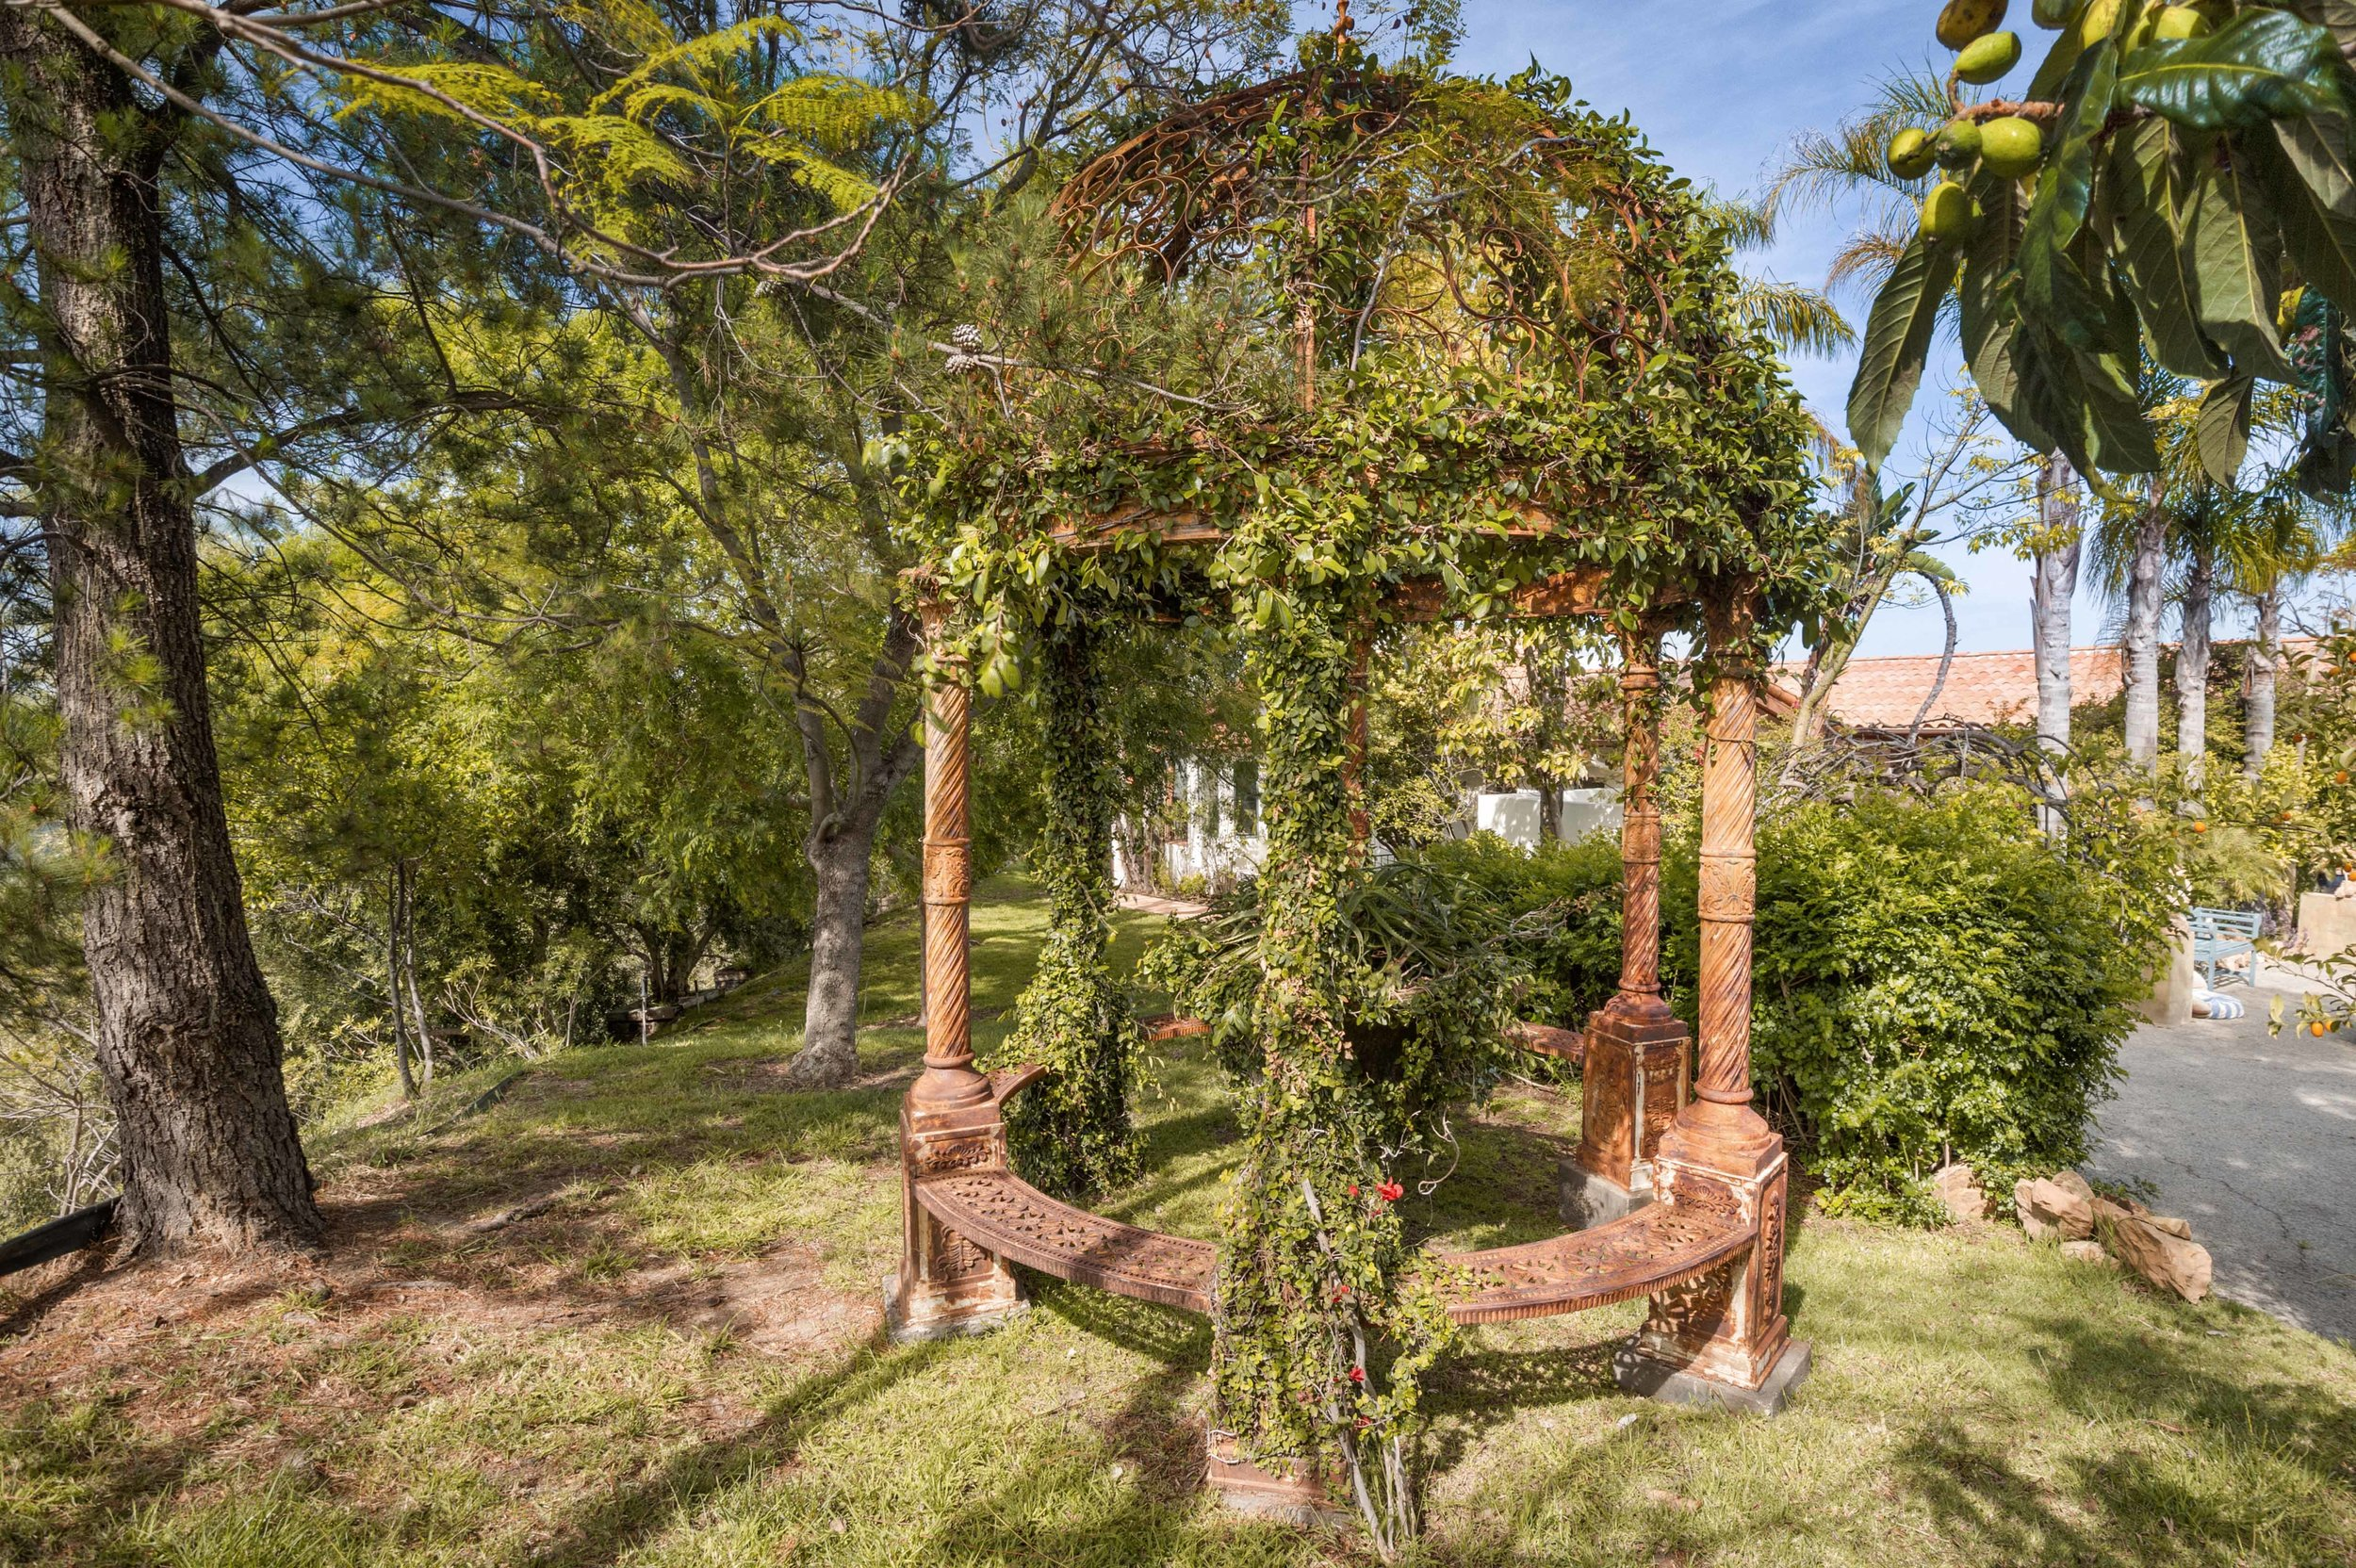 014 Gazebo 20333 Reigate Road Topanga For Sale Lease The Malibu Life Team Luxury Real Estate.jpg